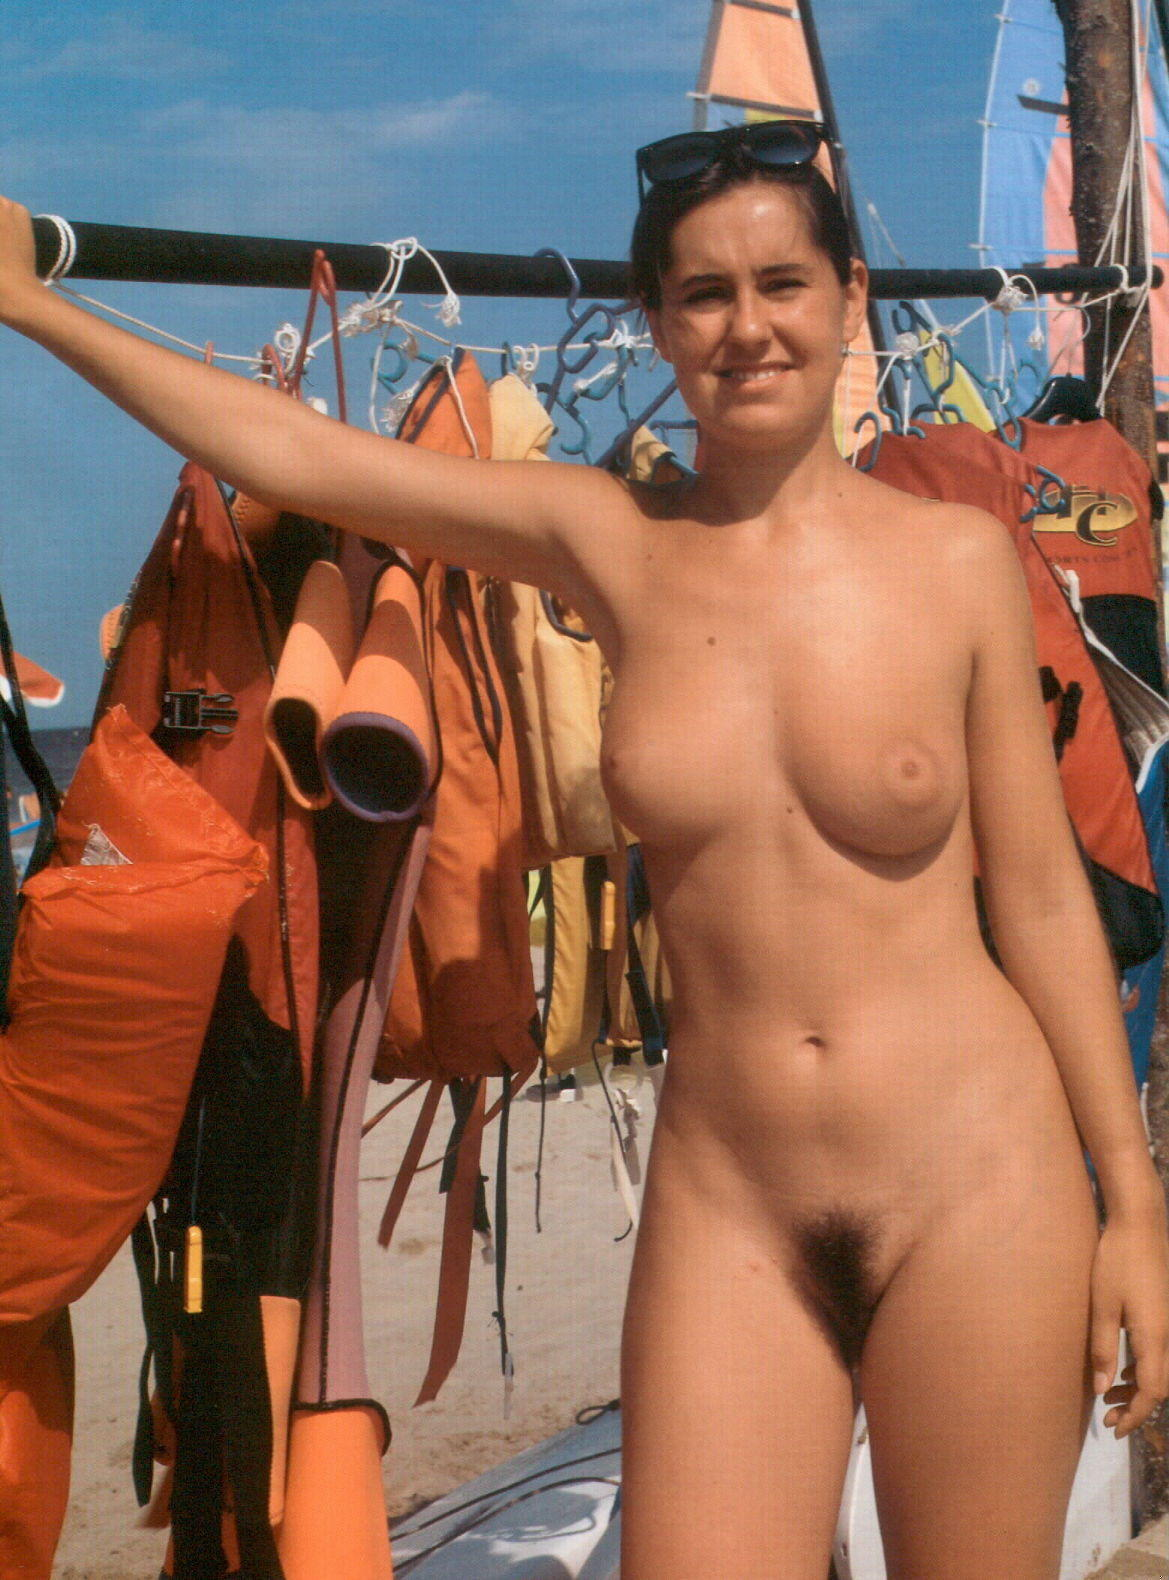 Naked baywatch babe shows boob job and hairy muff